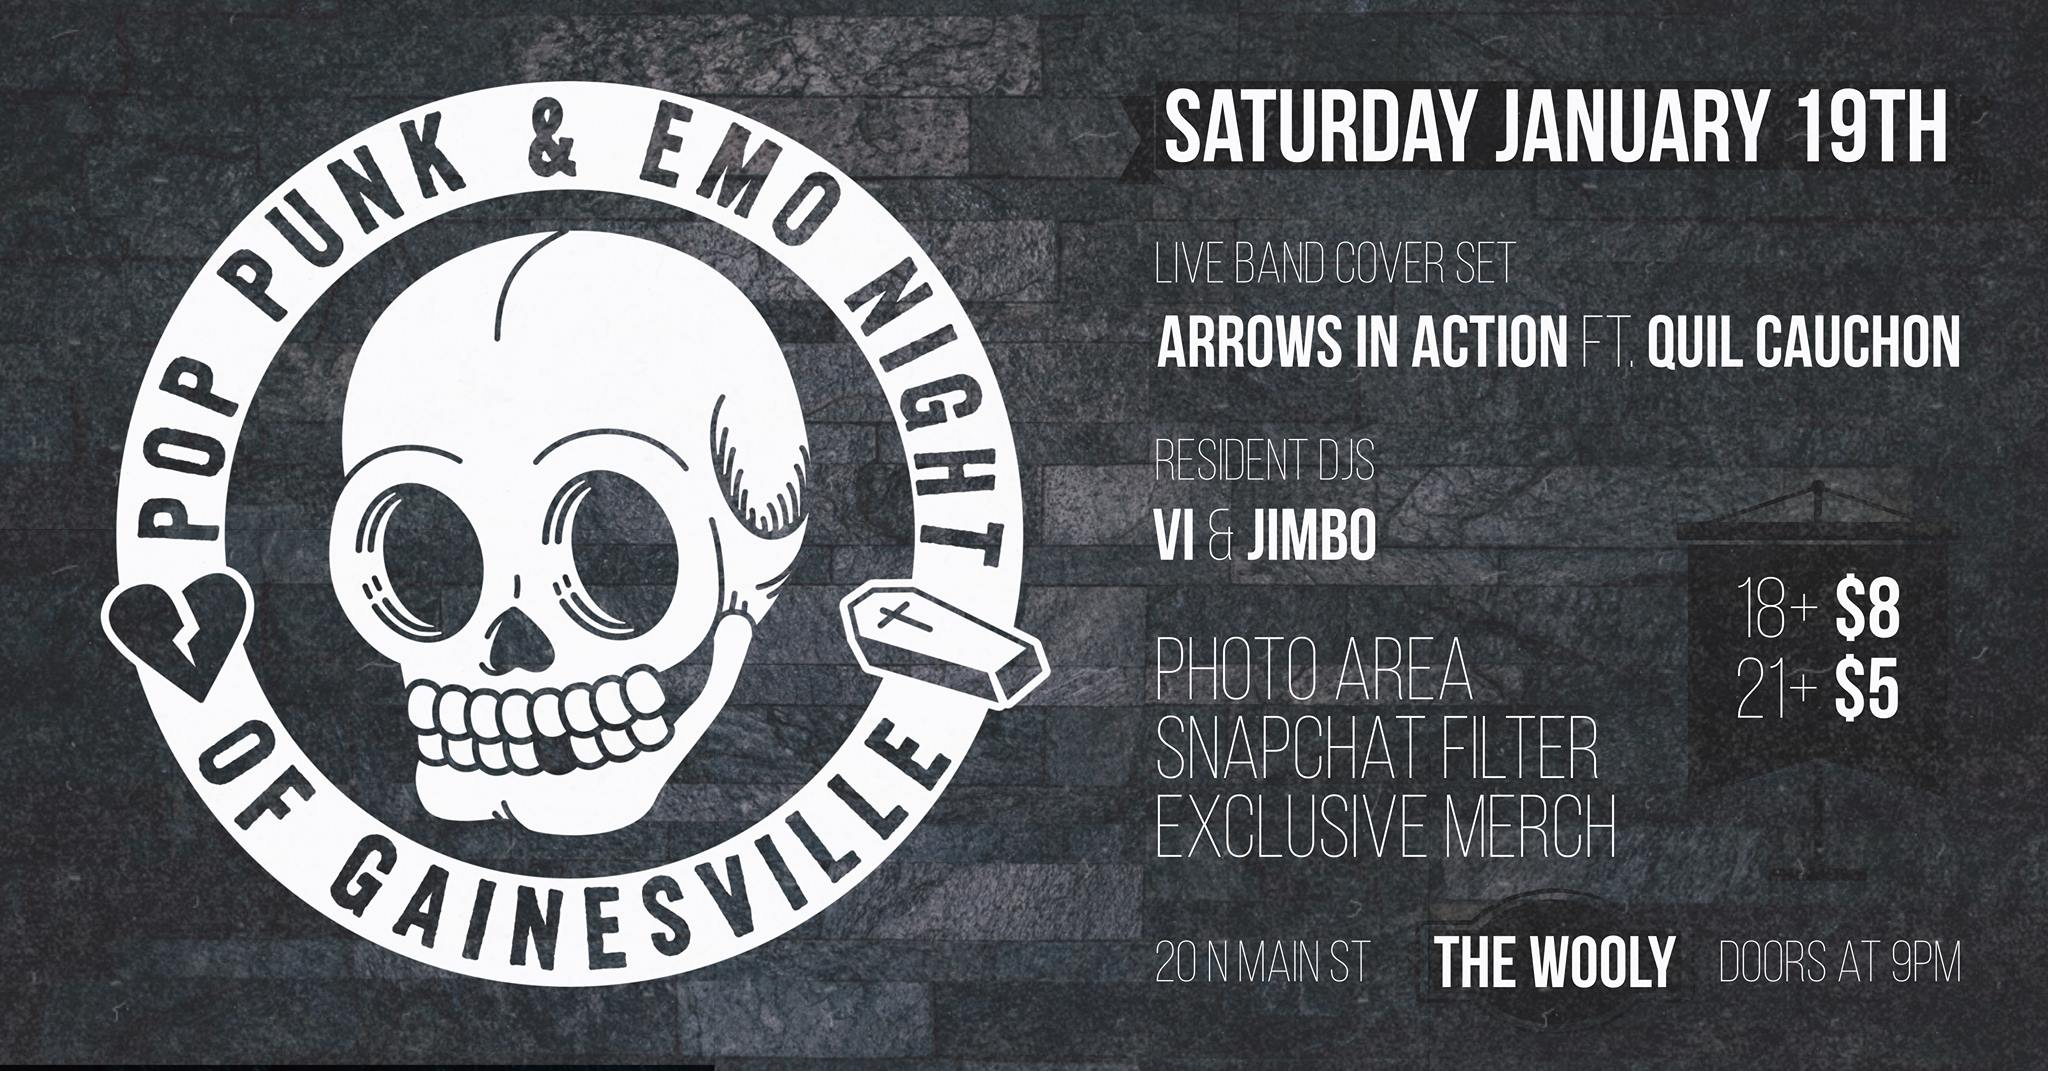 💔 Pop Punk & Emo Night 💀 of Gainesville ⚰️  ✞ Live Band Cover Set w/ Arrows In Action Ft. Quil Cauchon ✞ DJs Vi & Jimbo ✞ Photo Area & Snapchat Geofilter  ✞ Exclusive Merch   A dance party for fans of Paramore, Taking Back Sunday, Fall Out Boy, Say Anything, Thursday, The Used, Blink 182, My Chemical Romance, Jimmy Eat World, Panic! At the Disco, Motion City Soundtrack, The All-American Rejects, Green Day, Red Jumpsuit Apparatus, Hawthorne Heights, Dashboard Confessional and many more!  ➳ Saturday January 19th ➳ The Wooly ➳ Doors at 9PM ➳ $8 18+ ϟ $5 21+  ❥ Post your song requests in the discussion!  💔💀⚰️